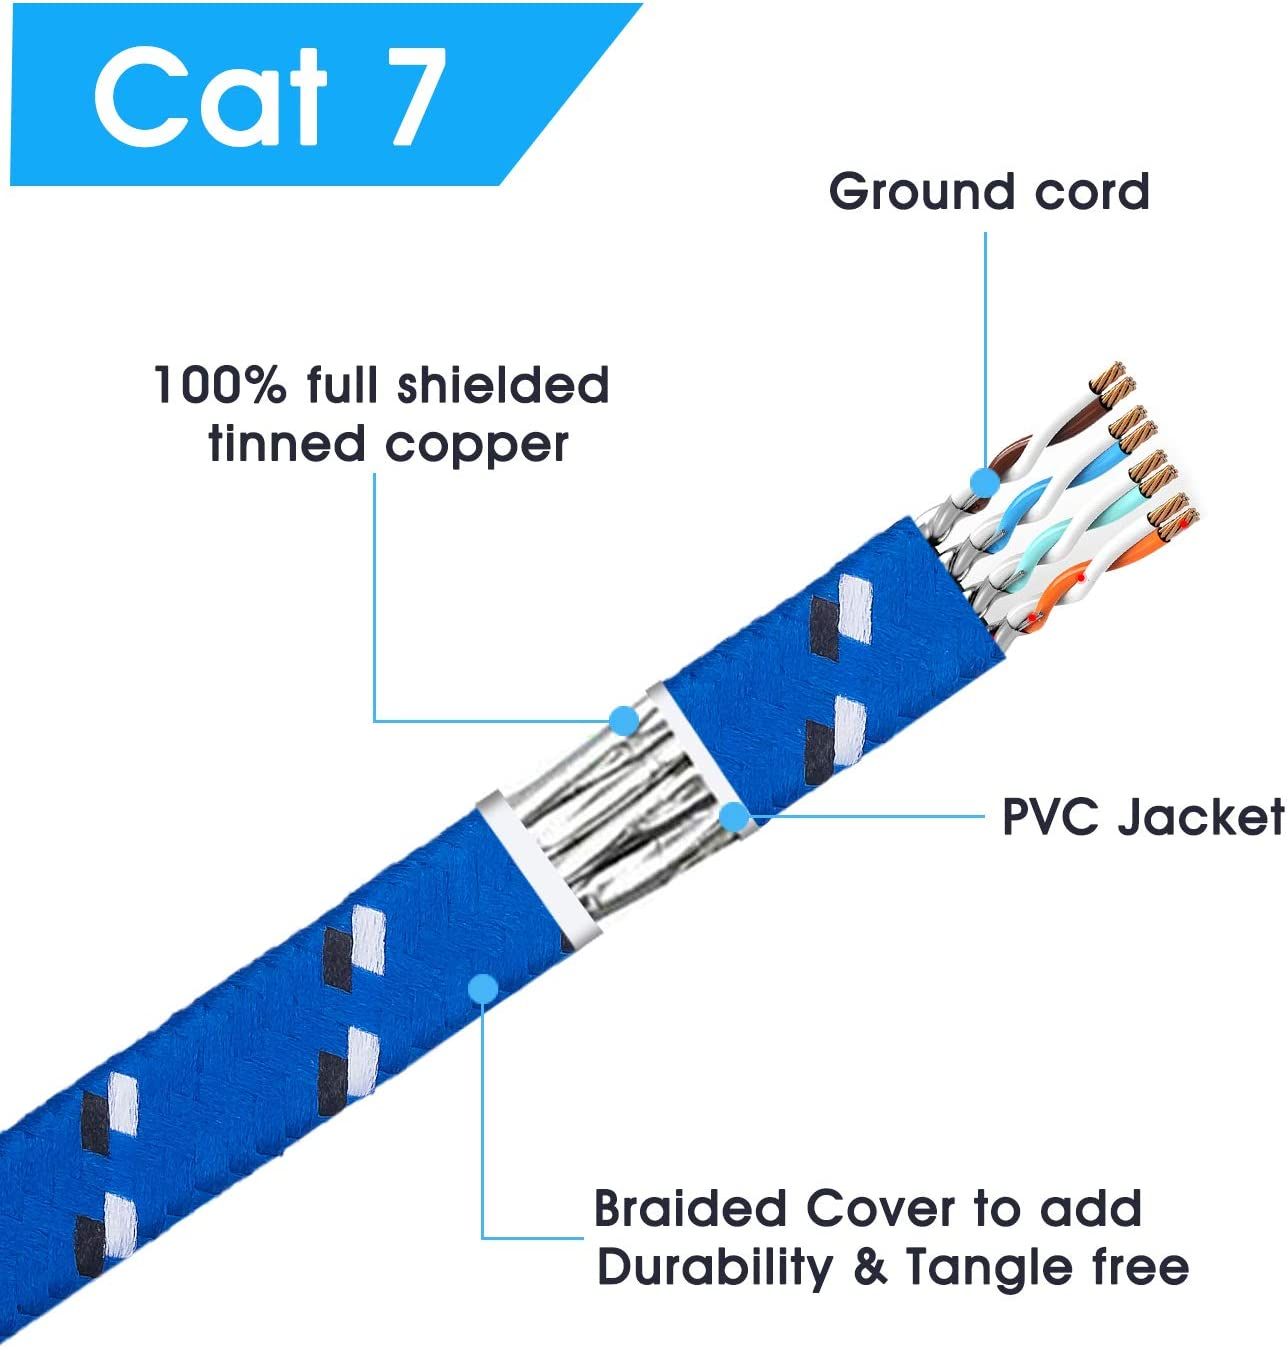 CAT 7 Ethernet Cable 10Ft,CAT7 Ethernet Ultra Flat Patch Cable for Modem Router LAN Network Built with Gold Plated /& Shielded RJ45 Connectors and Nylon Braided Jacket(10Ft//3M)